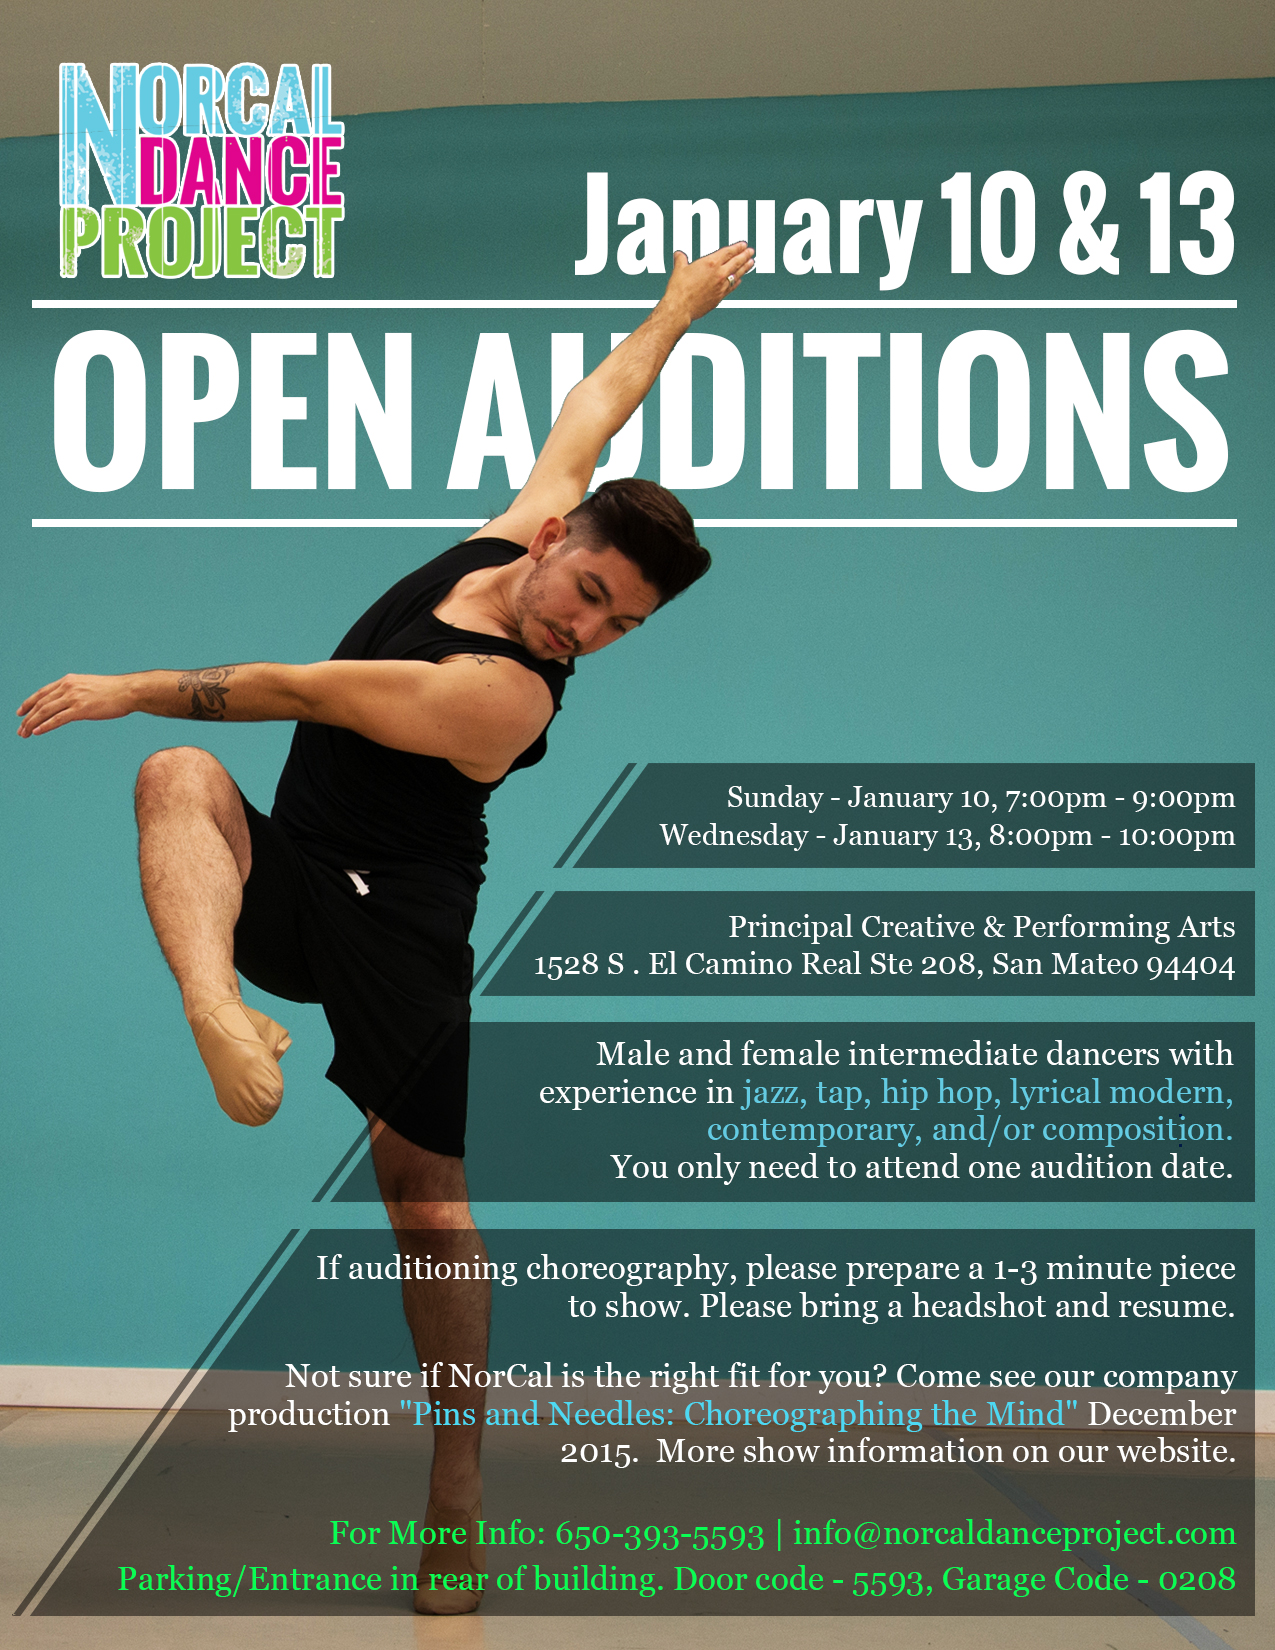 Dance Auditions For NorCal Dance Project - January 10 & 13, 2015